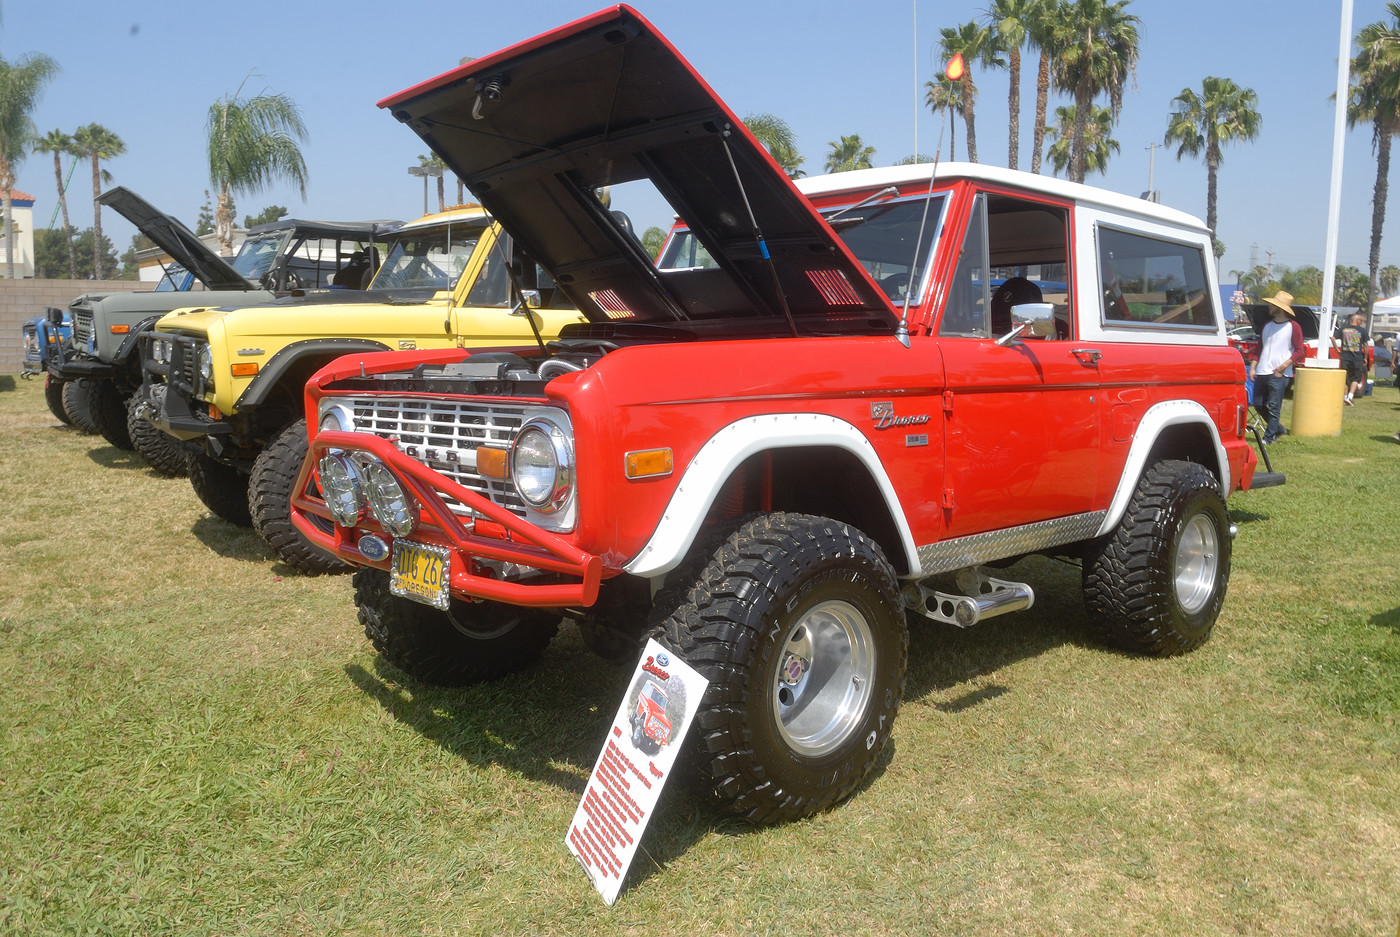 1977 Ford Bronco owned by Rocky and Donna Geisler DSC 4892